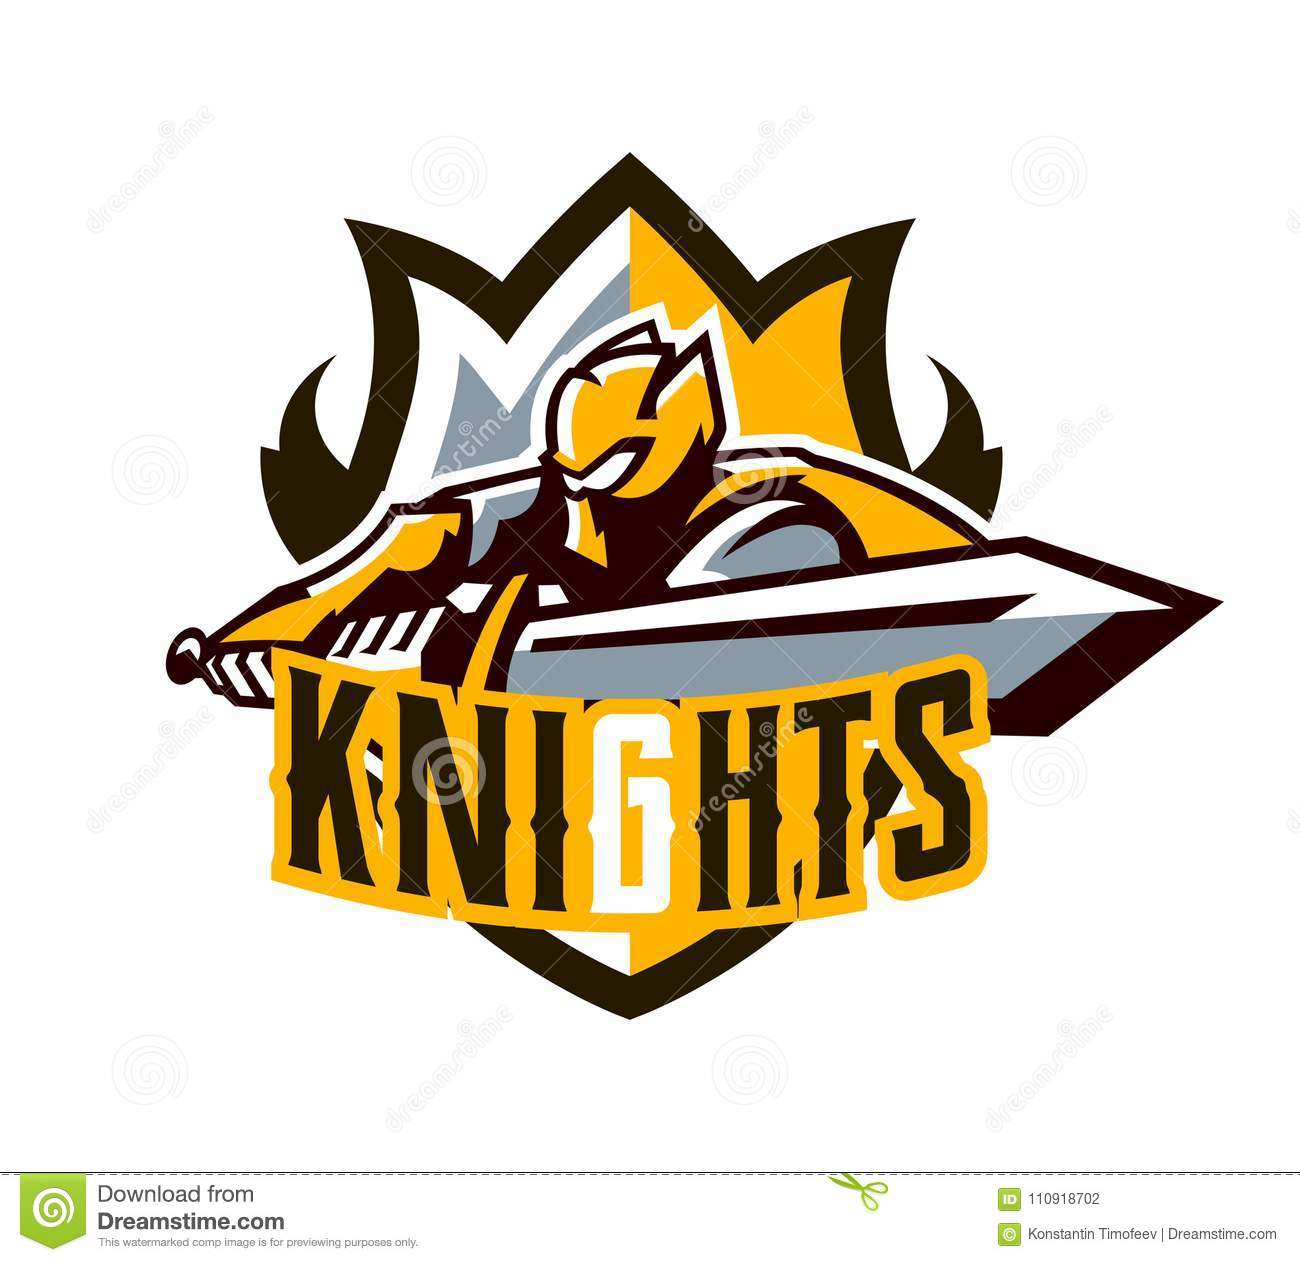 A Colorful Logo, A Sticker, An Emblem, A Knight Is Attacking